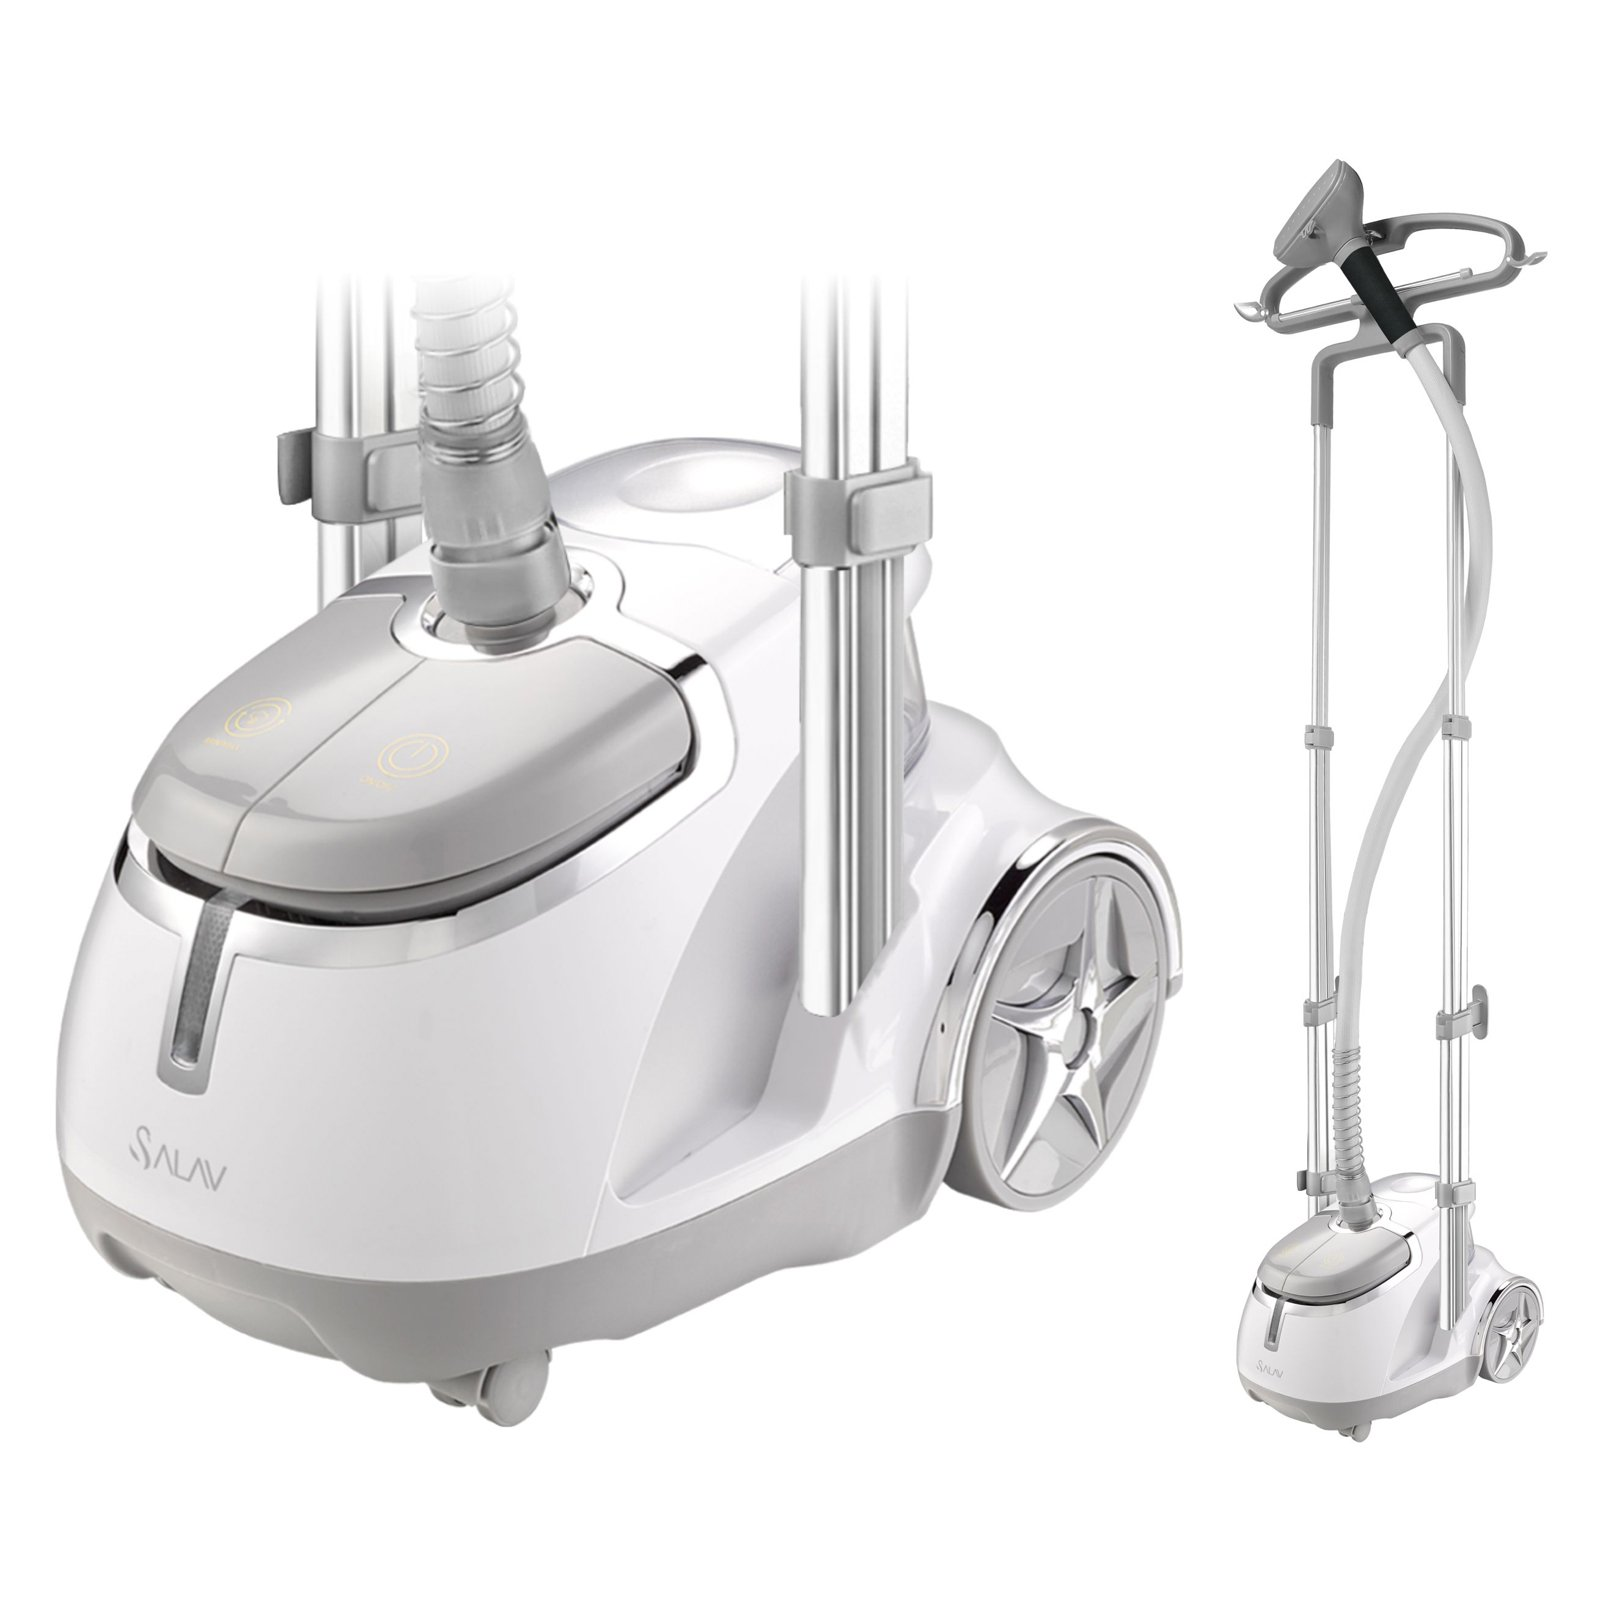 SALAV GS45-DJ Dual Bar Garment Steamer w/ Foot Pedal Controls, Silver